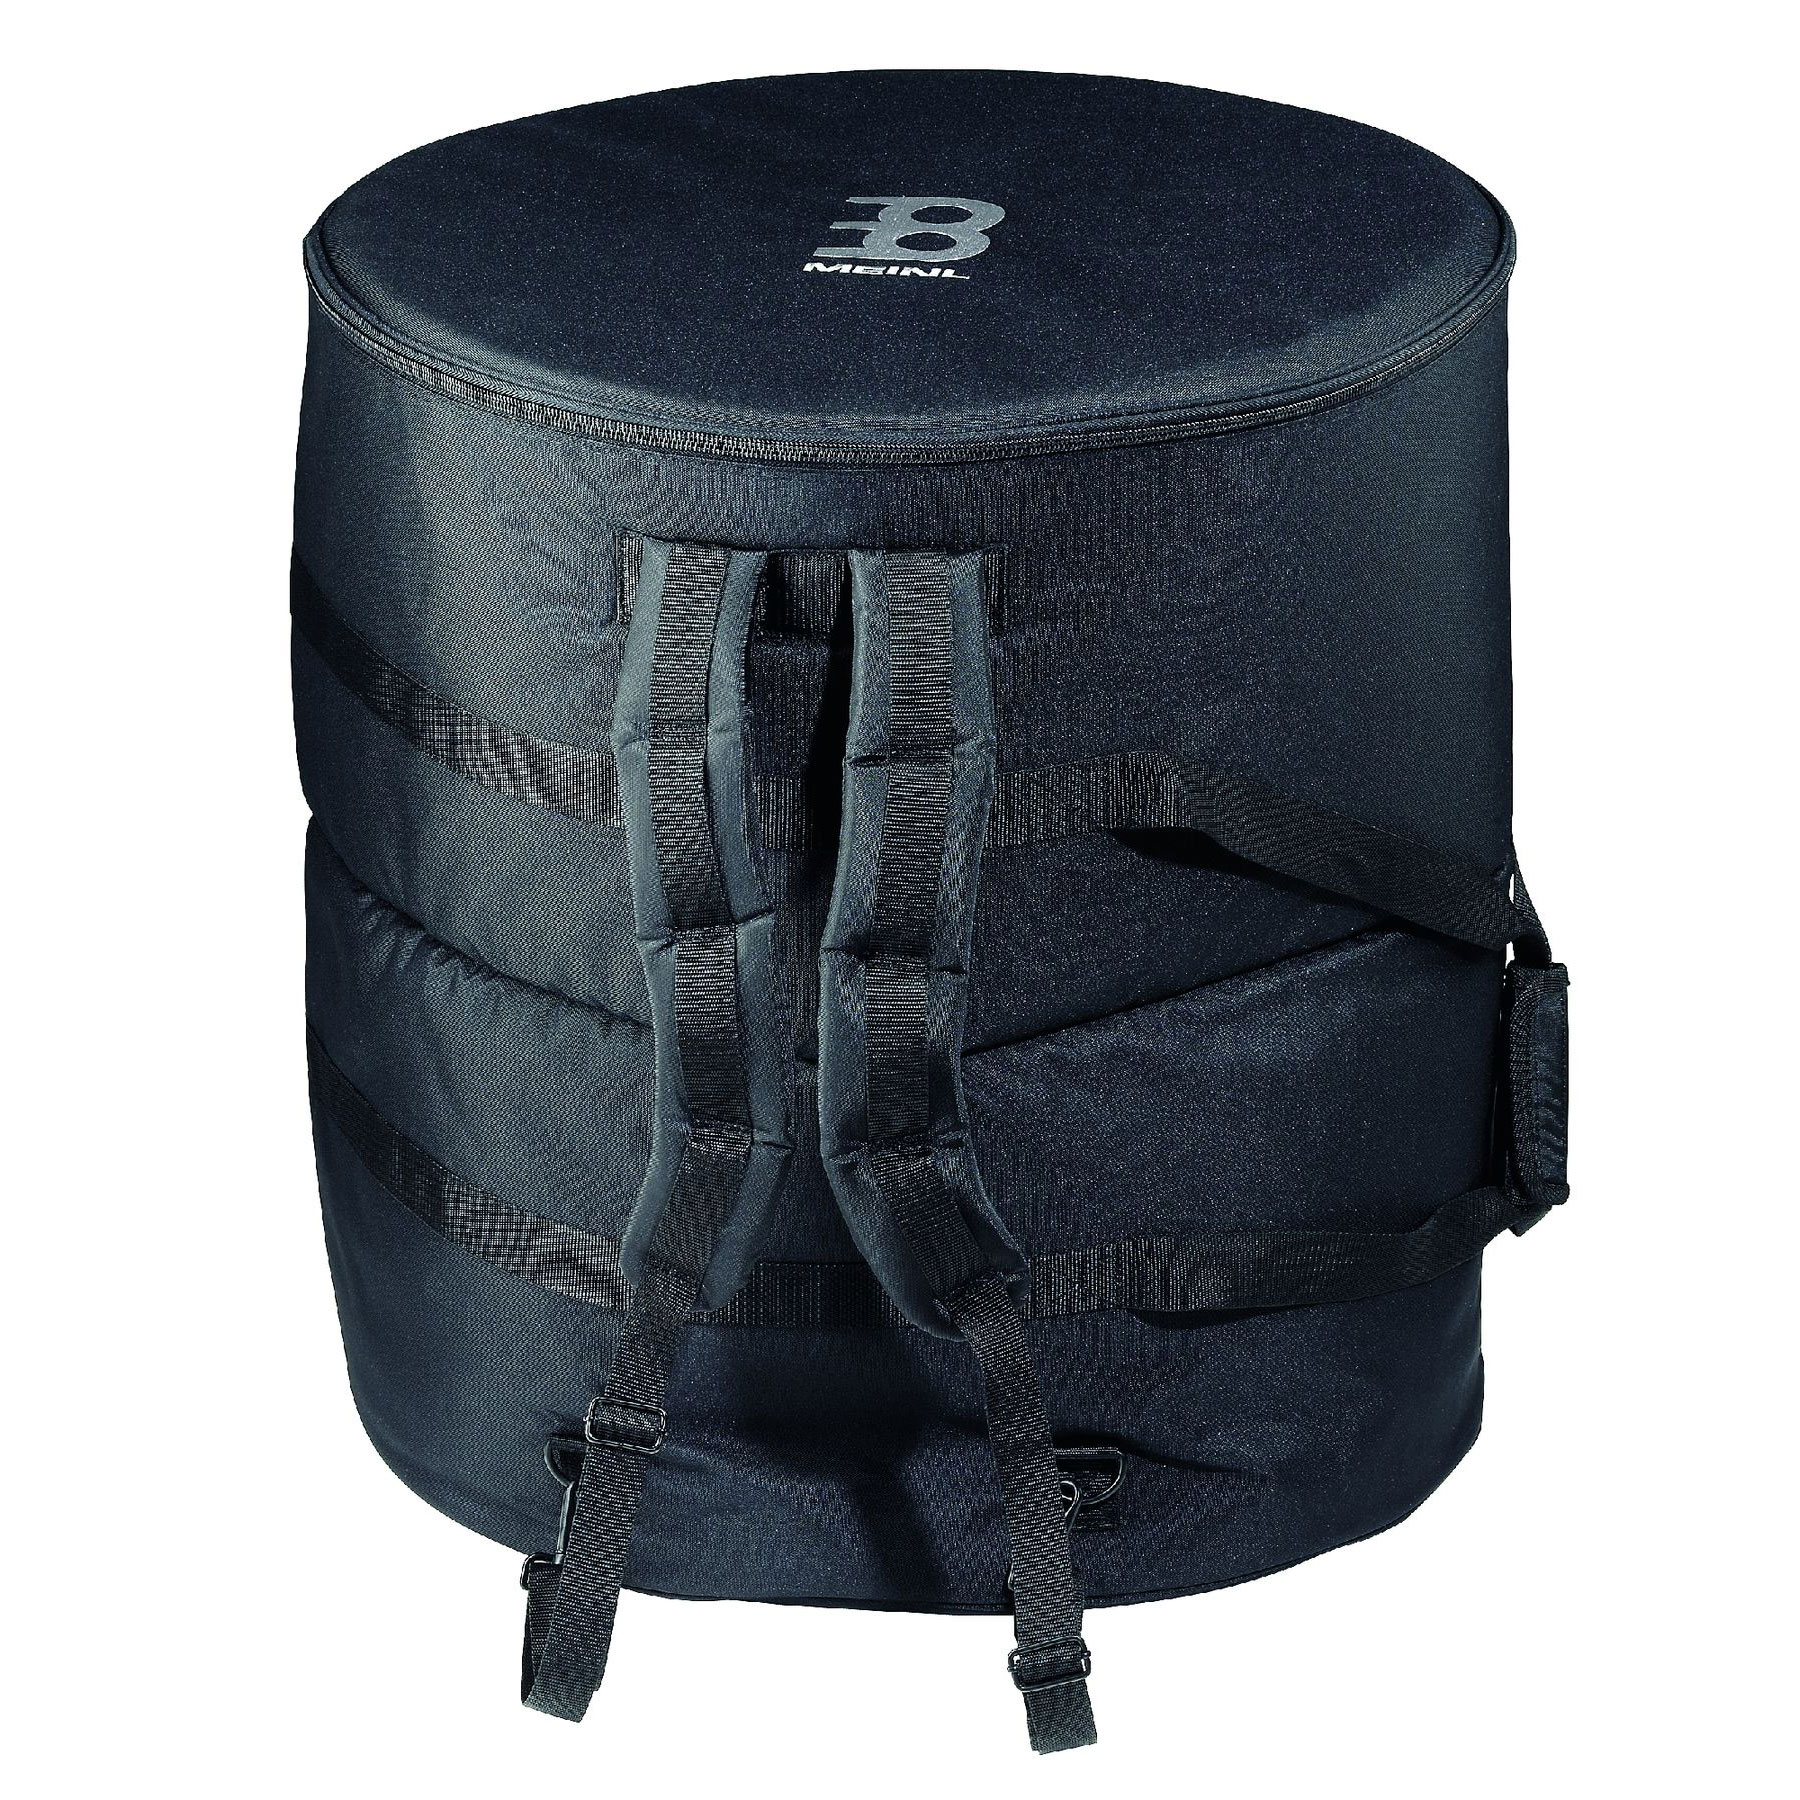 Meinl MSUB-18 Surdo Bag tovvuIgyVy